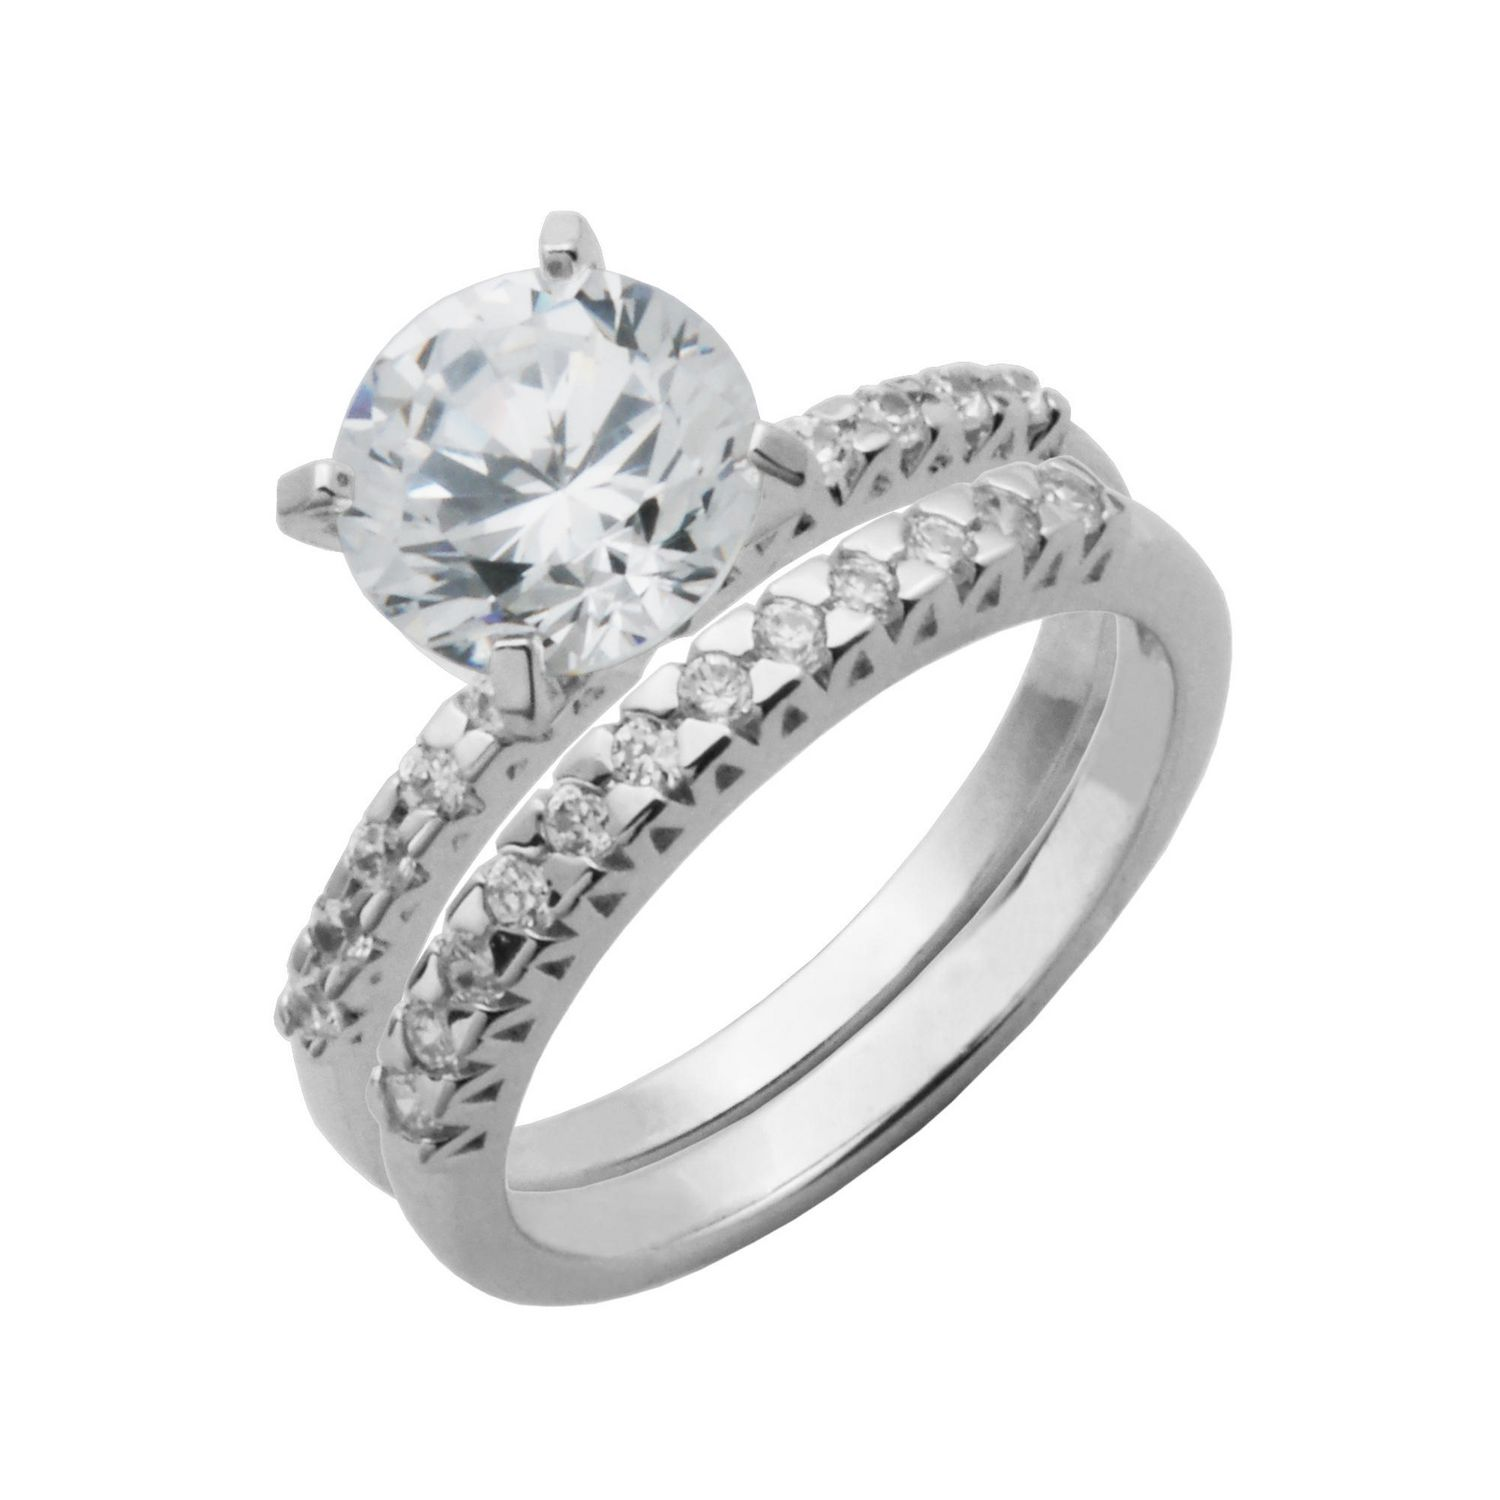 walmart wedding ring sets Bride to Be Sterling Silver 8mm Round Cubic Zirconia Engagement Ring Set Walmart ca